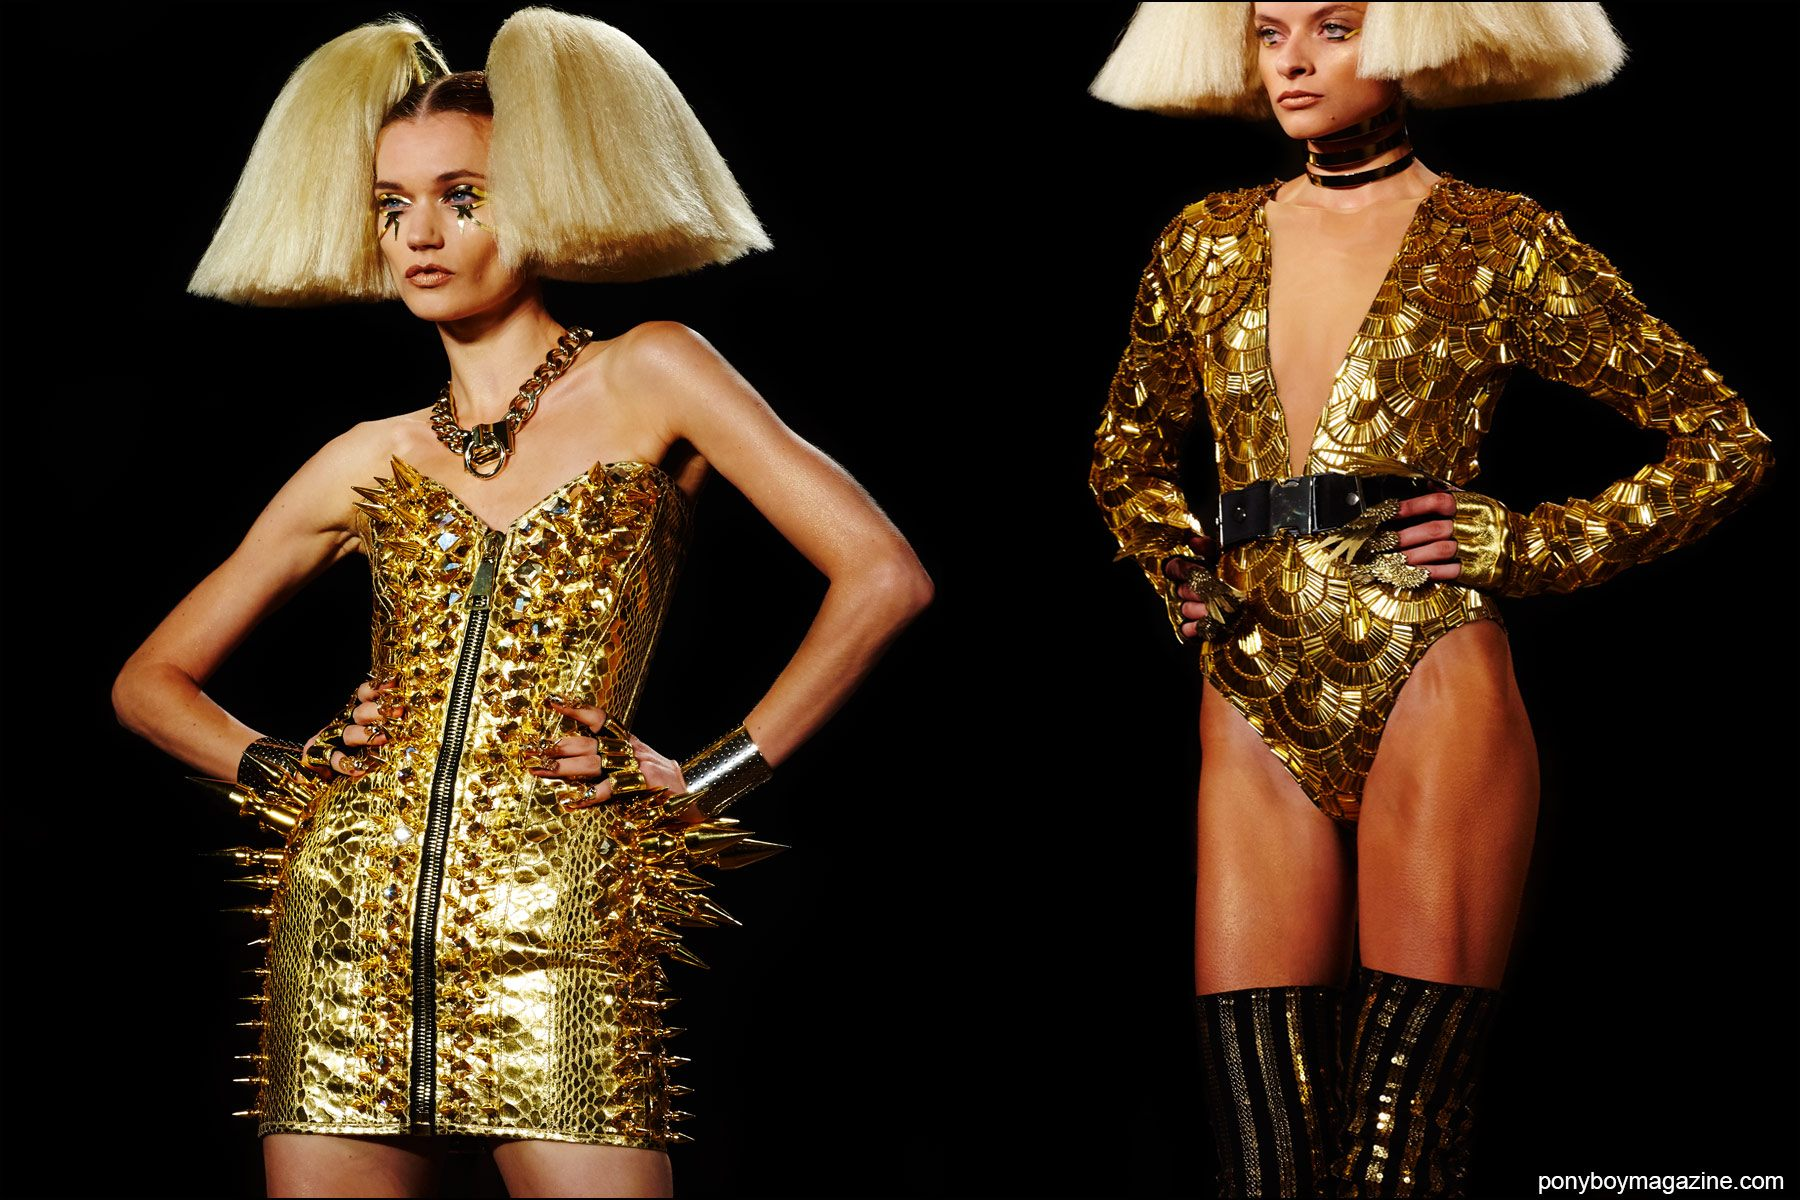 Gold creations on the Blonds Spring/Summer 2016 runway, photographed by Alexander Thompson for Ponyboy magazine NY.